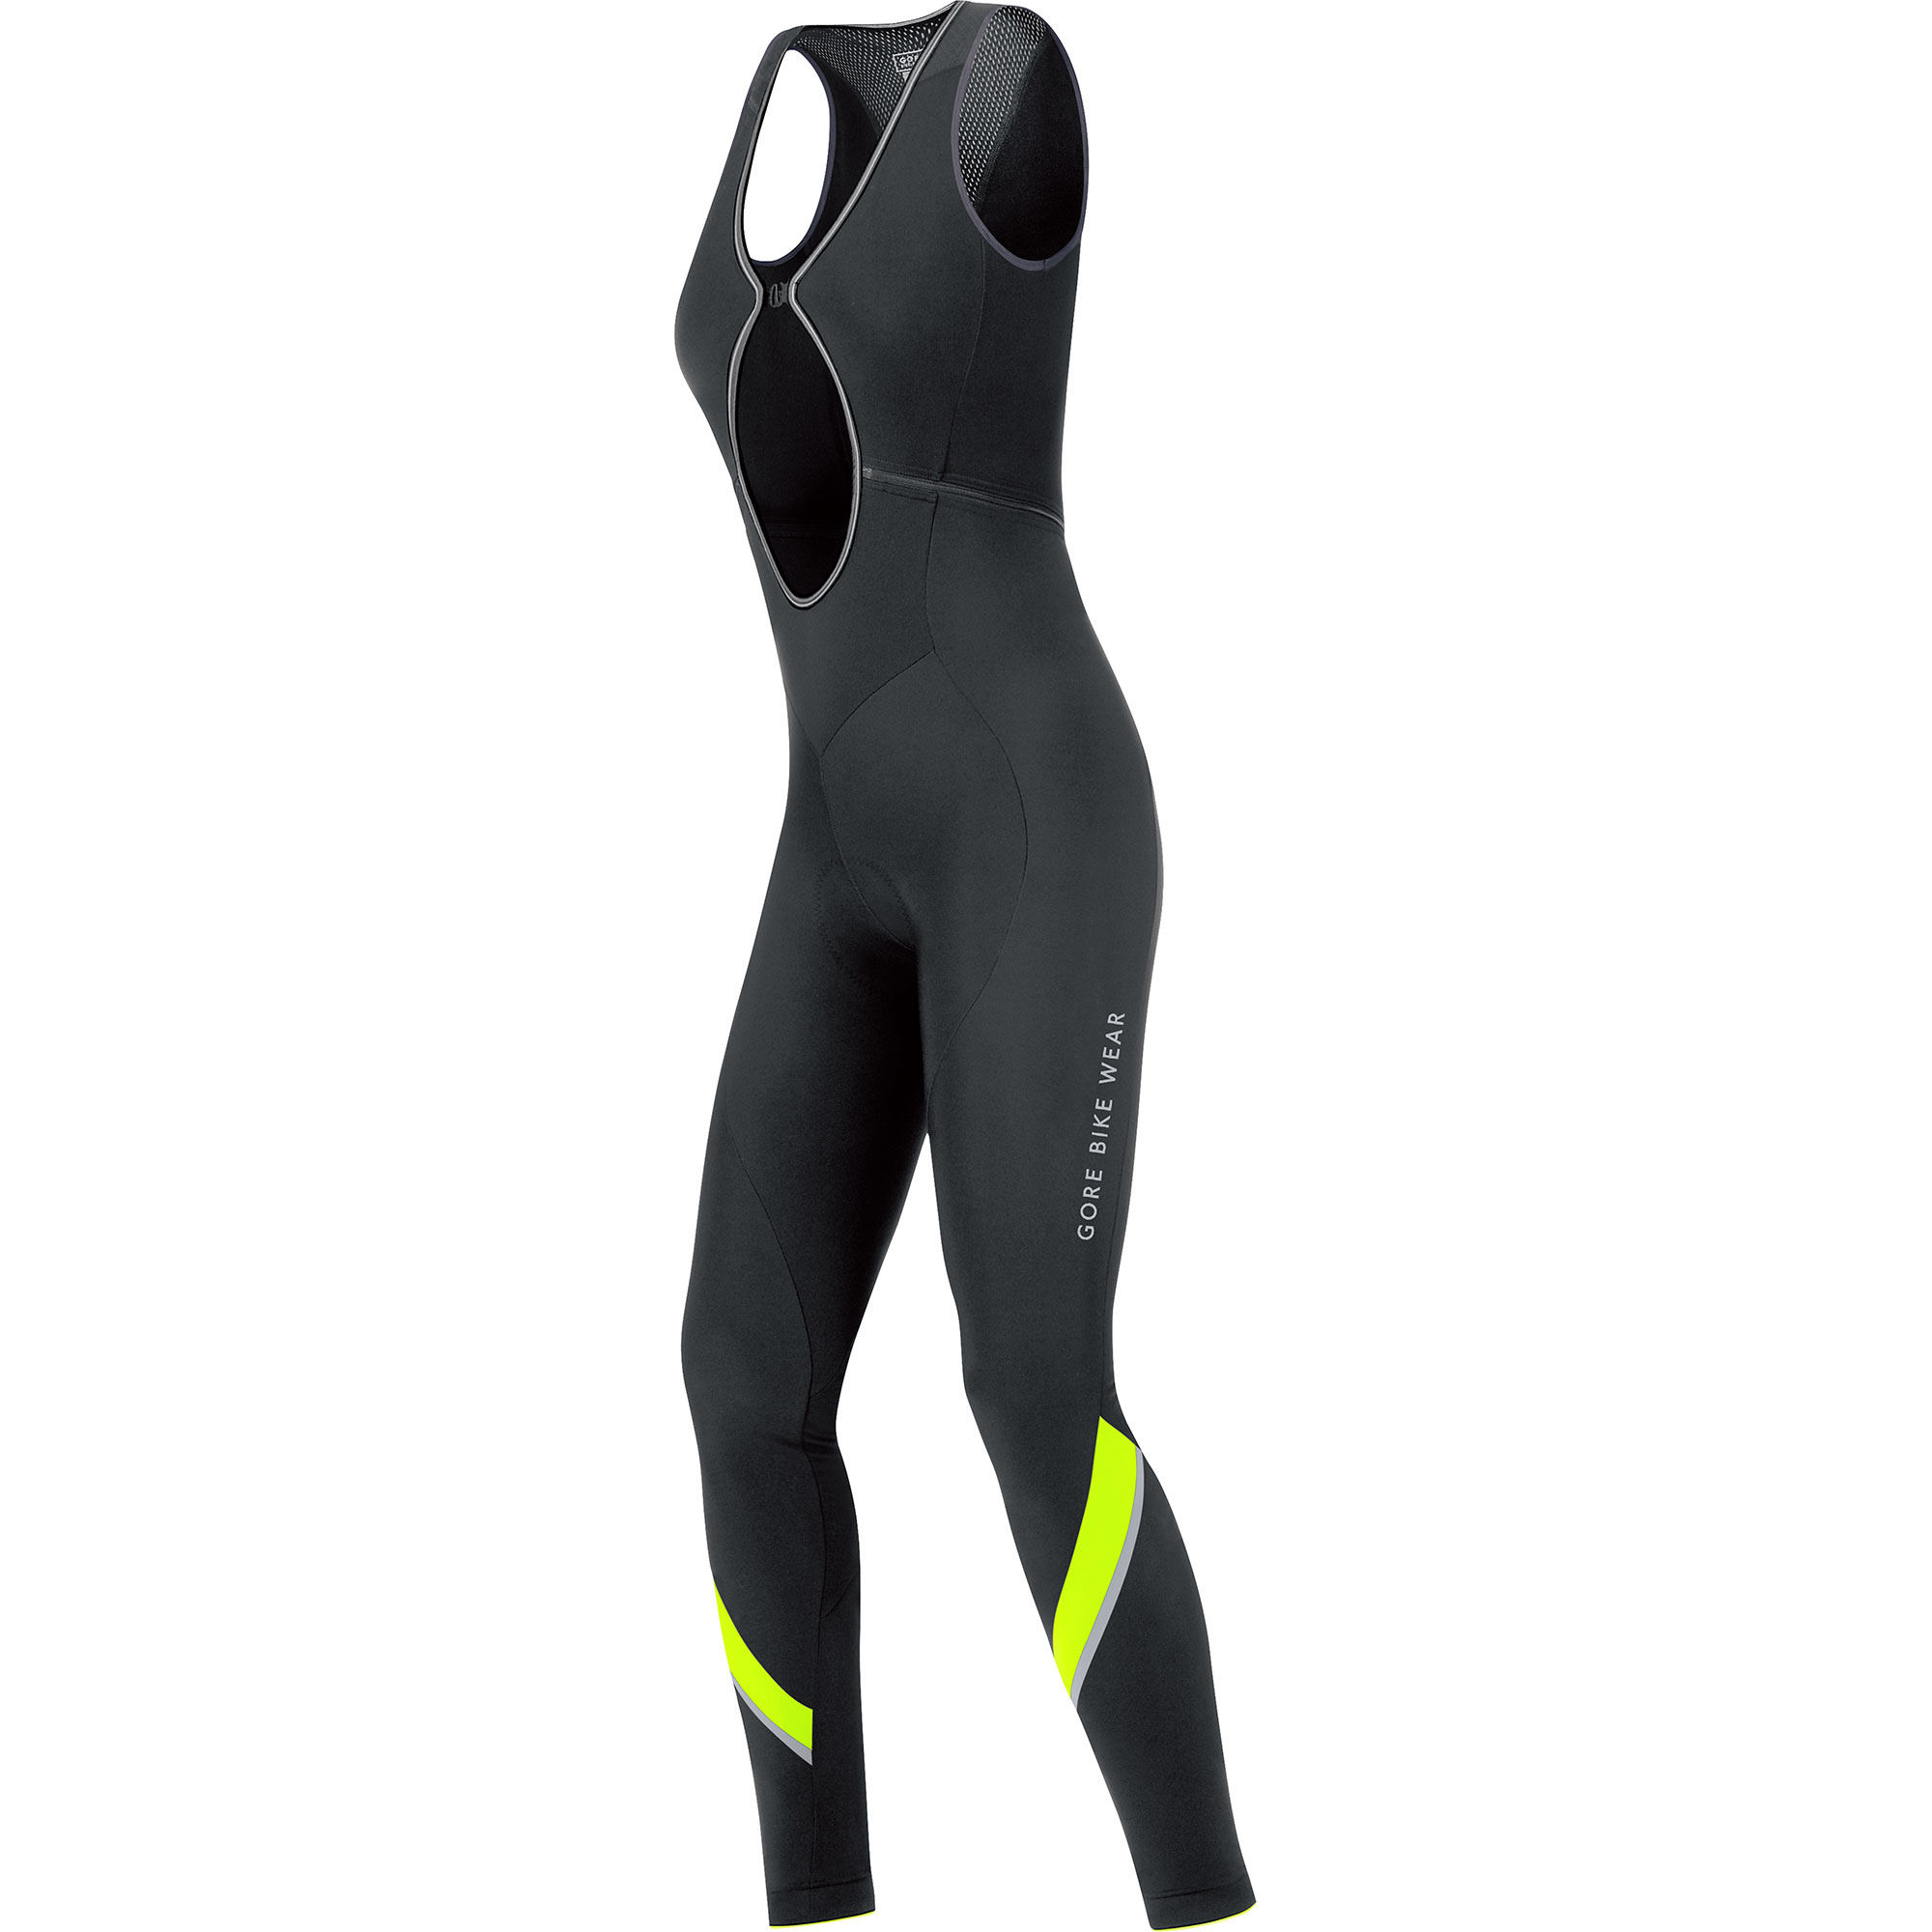 Wiggle Gore Bike Wear Women S Power 2 0 Thermo Bib Tights